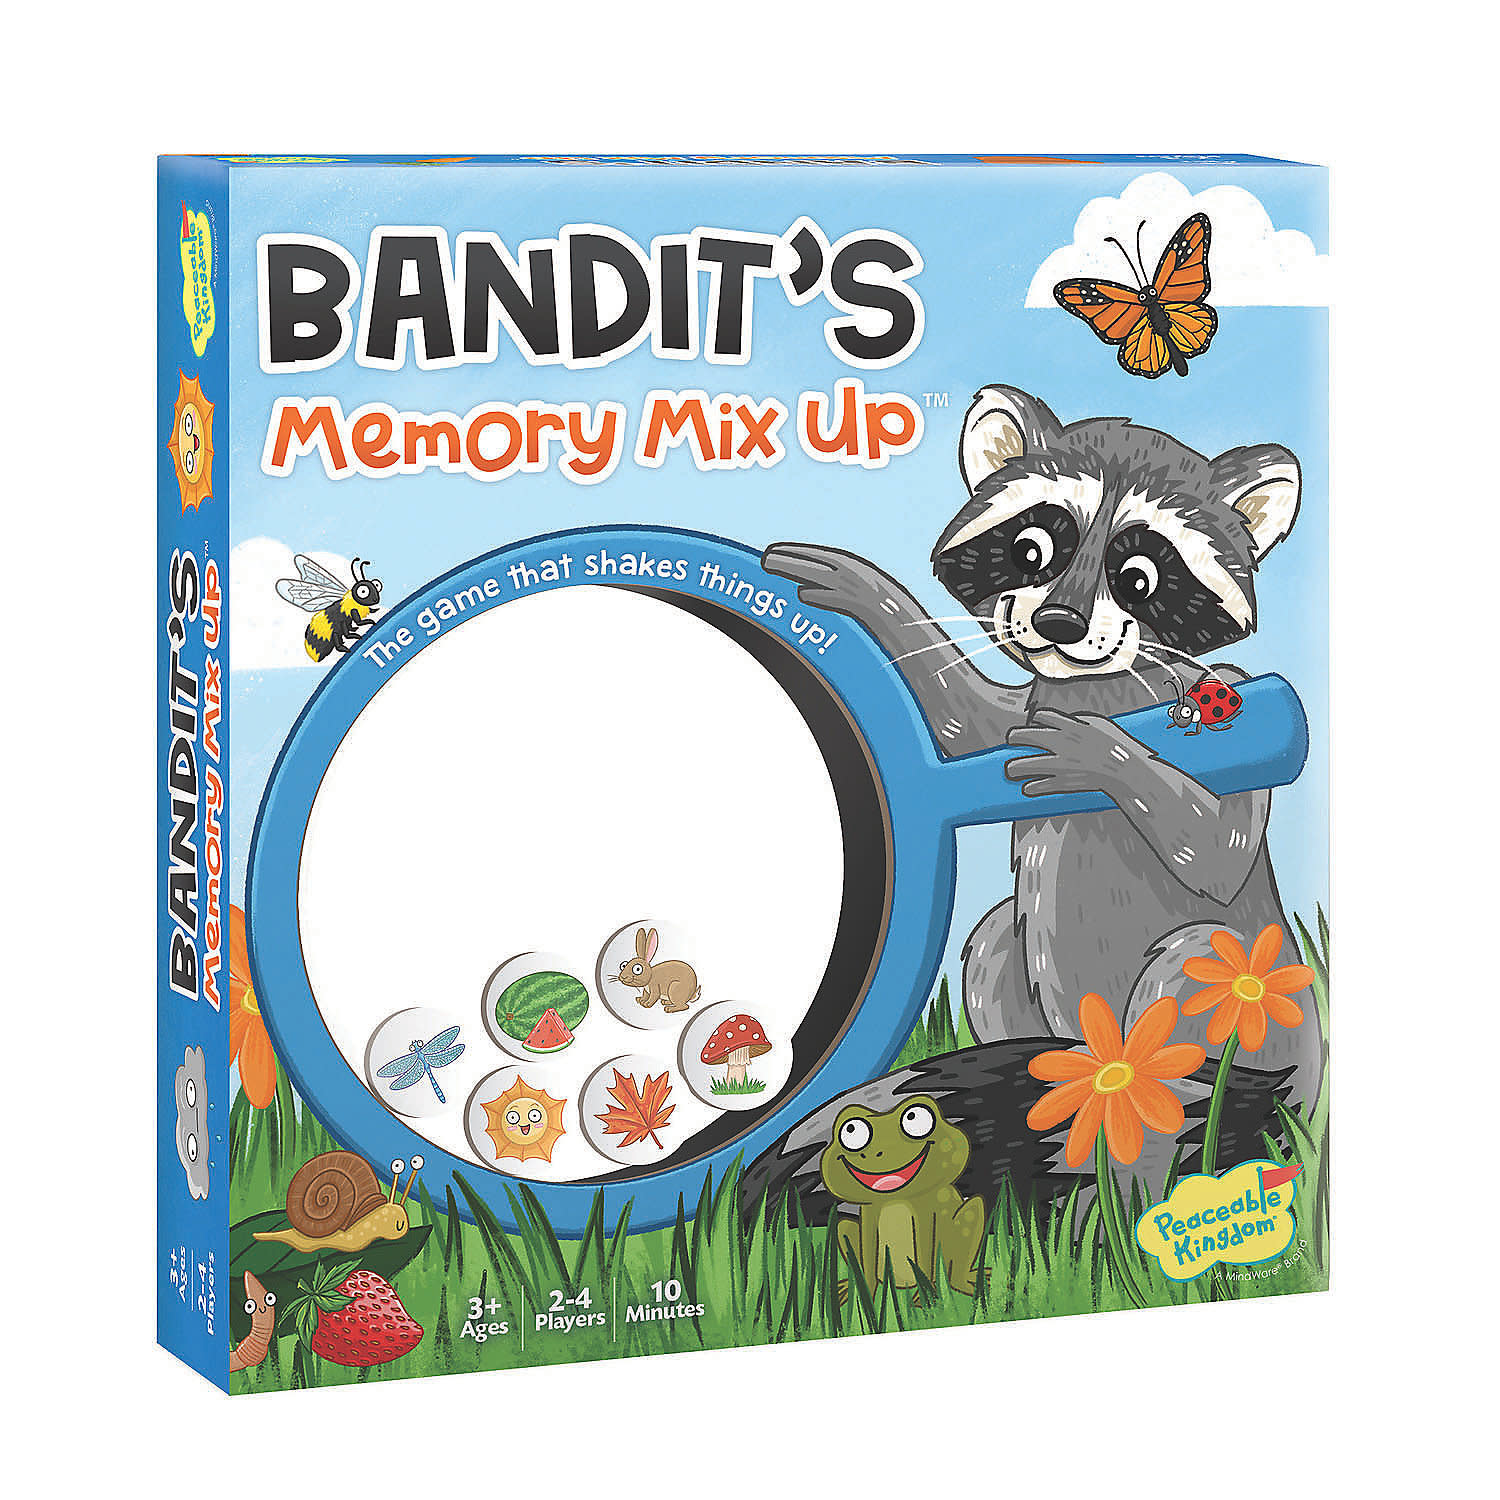 Bandit's Memory Mix Up by Peaceable Kingdom